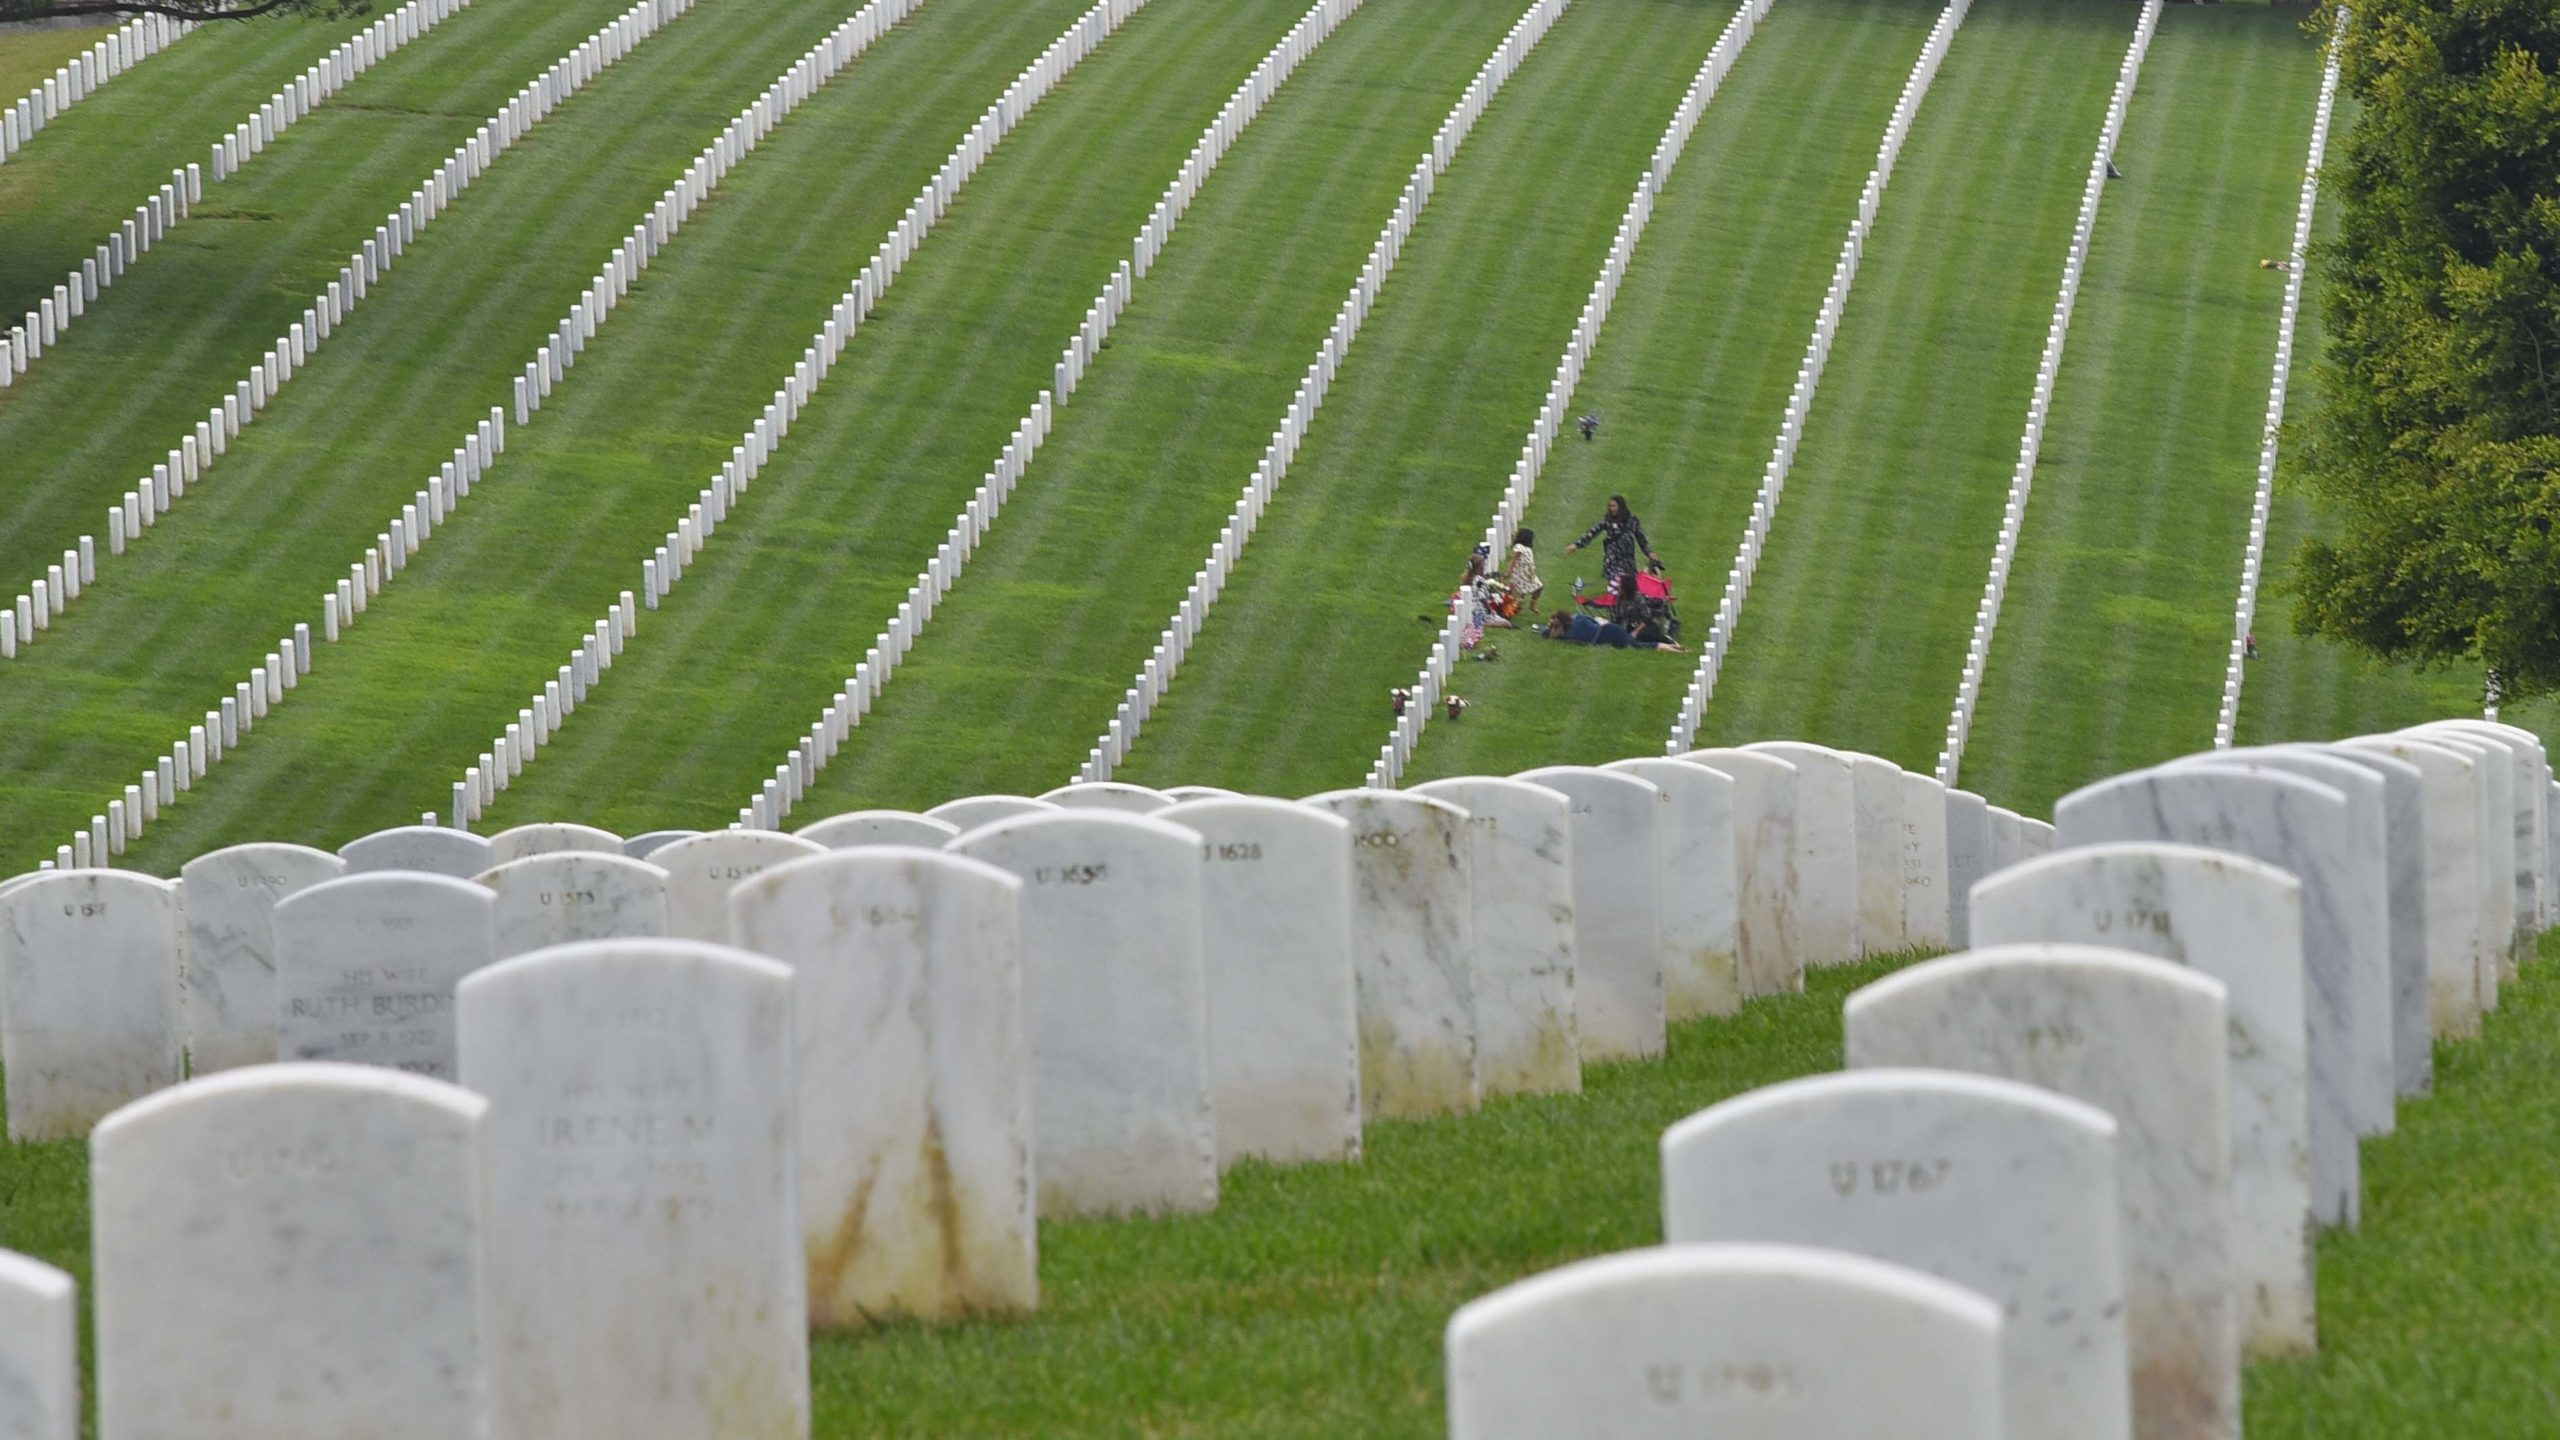 While people weren't invited to a public Memorial Day service at Ft. Rosecrans National Cemetery, families and friends streamed onto the grounds to pay their respects to their loved ones.